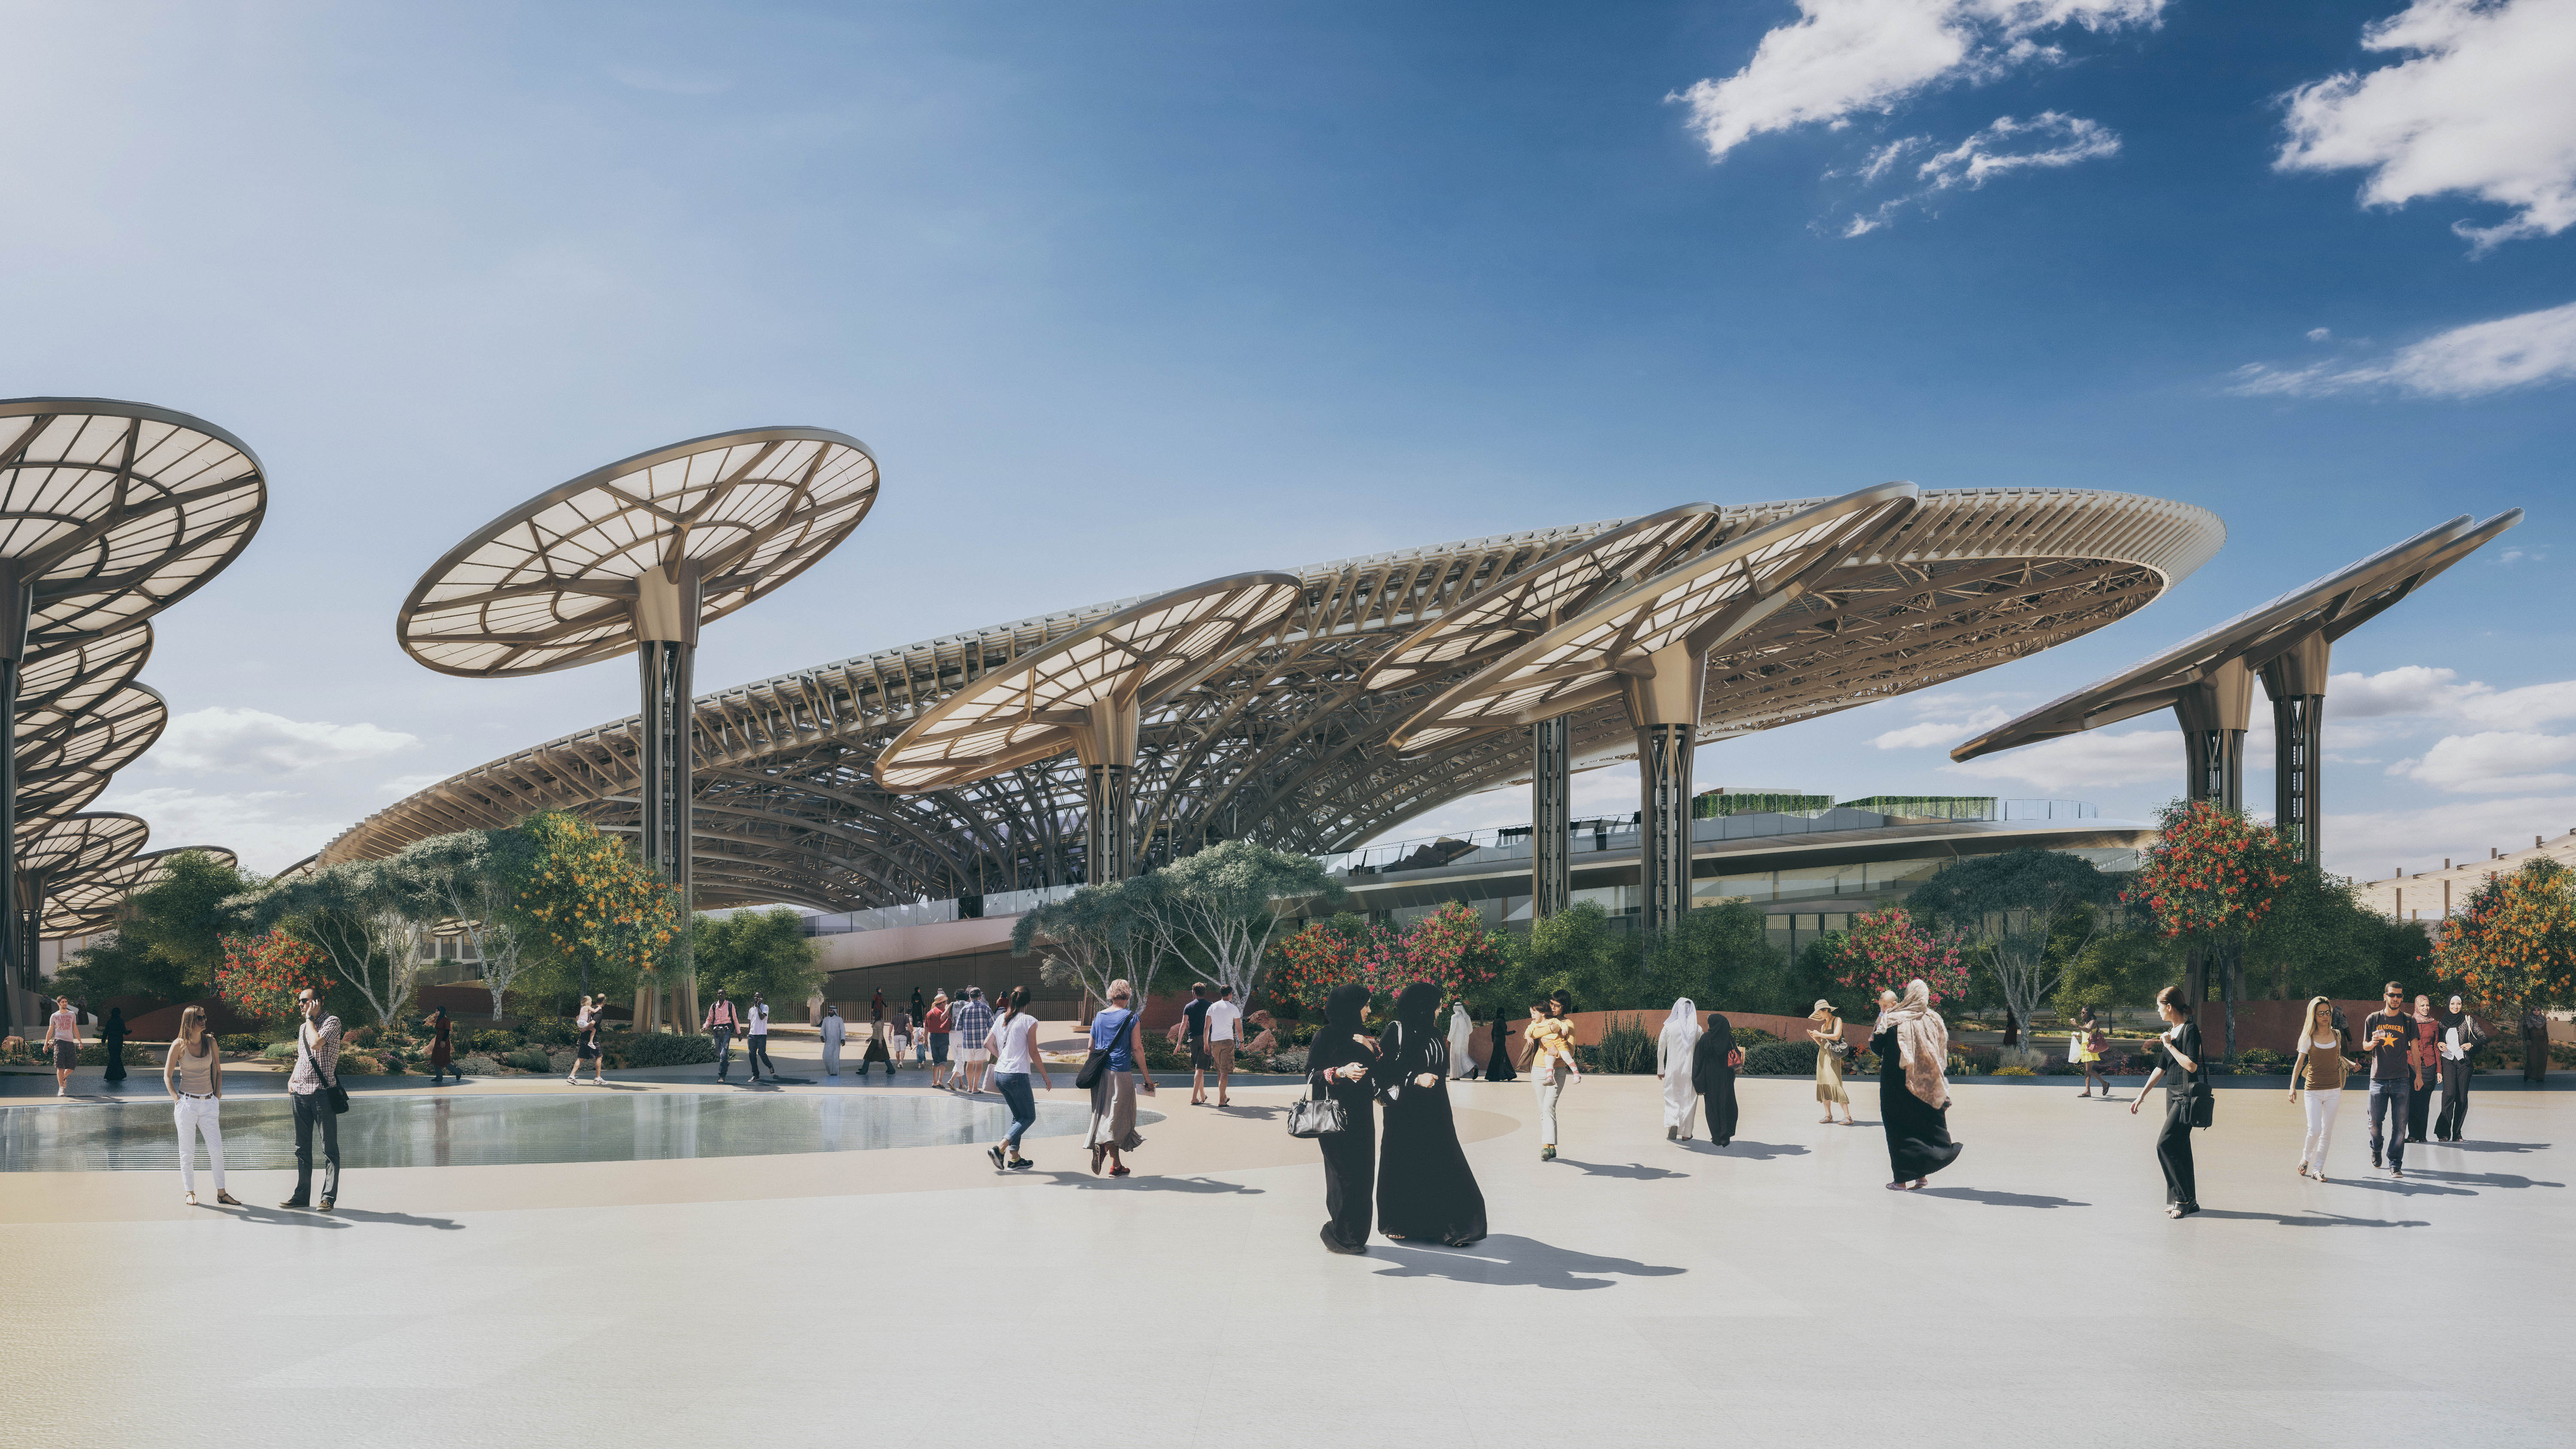 A CGI of the main entrance to Expo 2020 Dubai